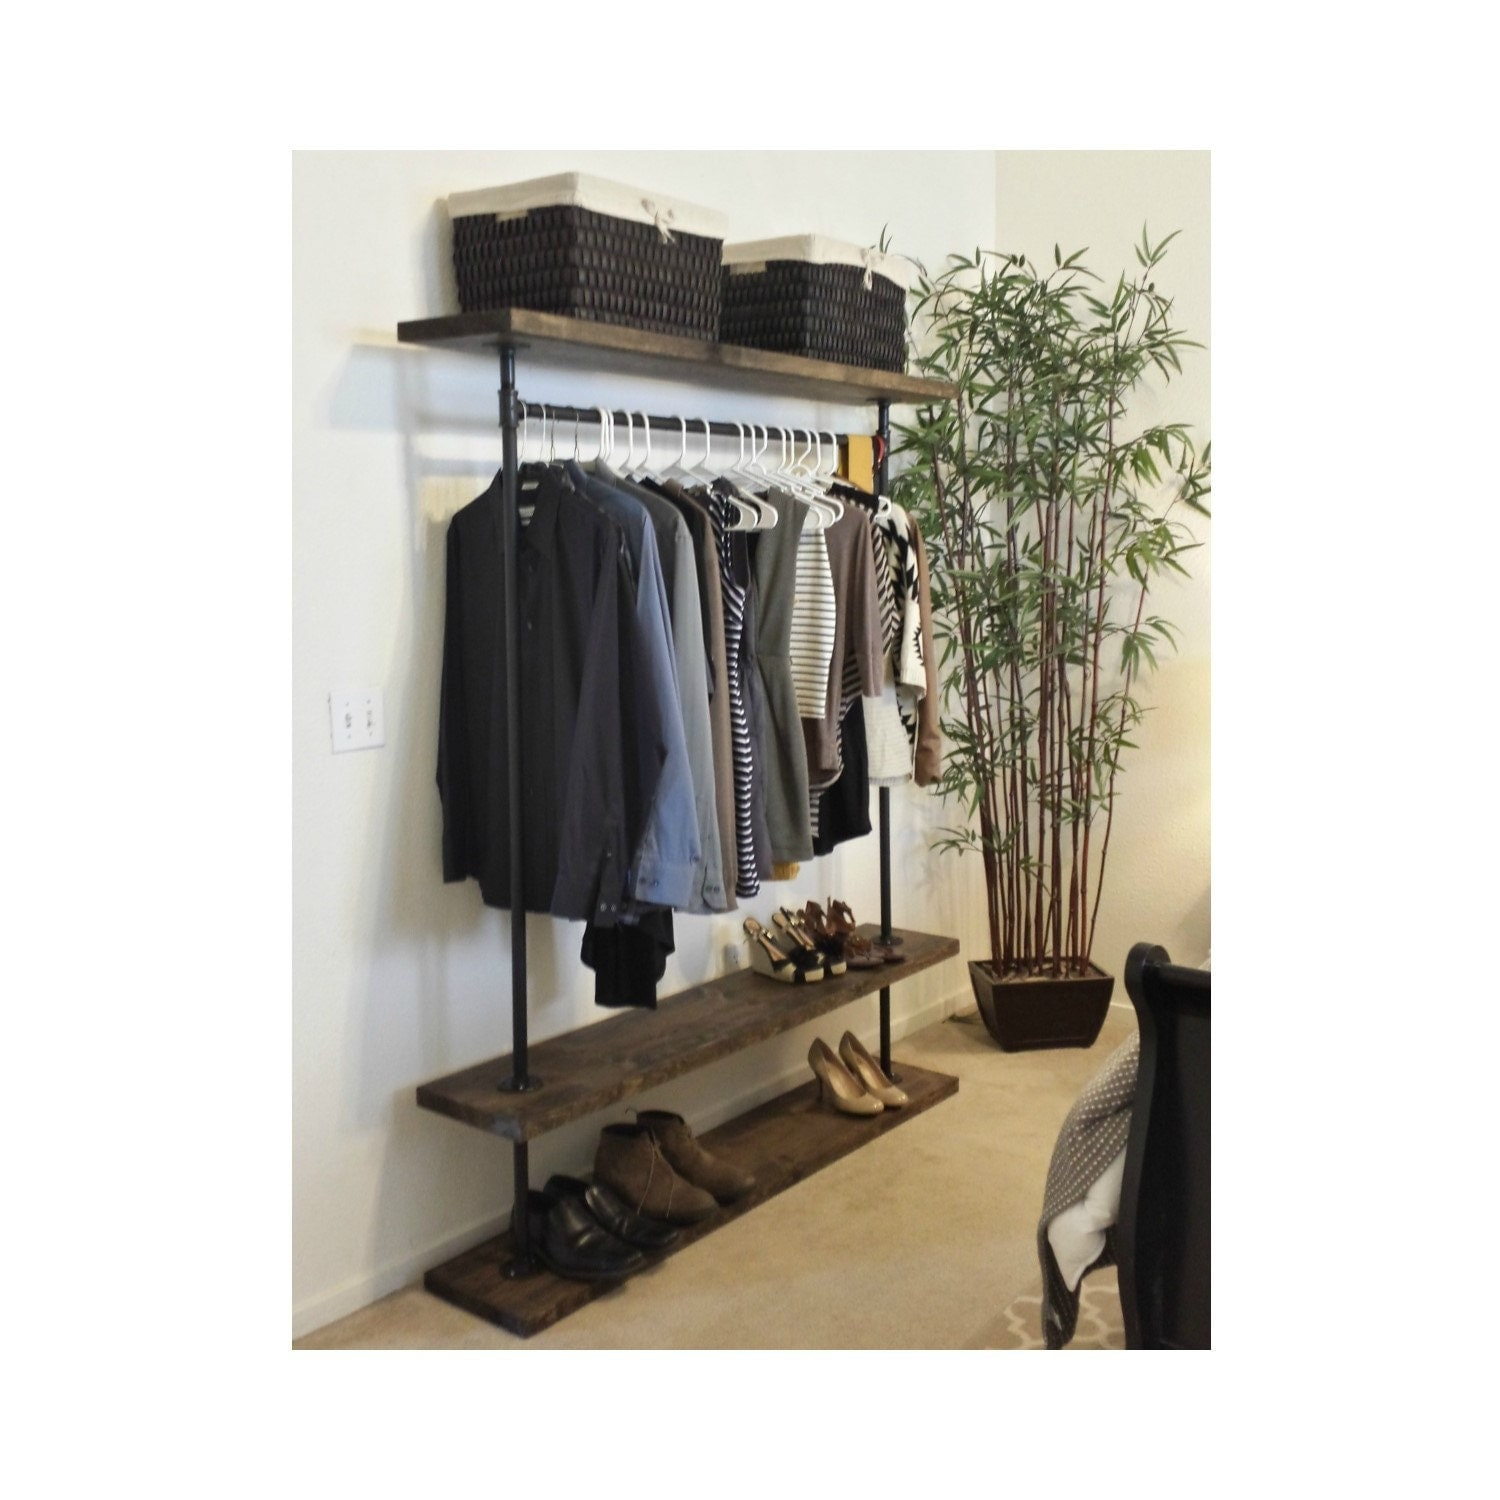 Marvelous photograph of IRD Triple Shelf Clothing Rack Industrial by MaverickIndustrial with #836E48 color and 1500x1500 pixels